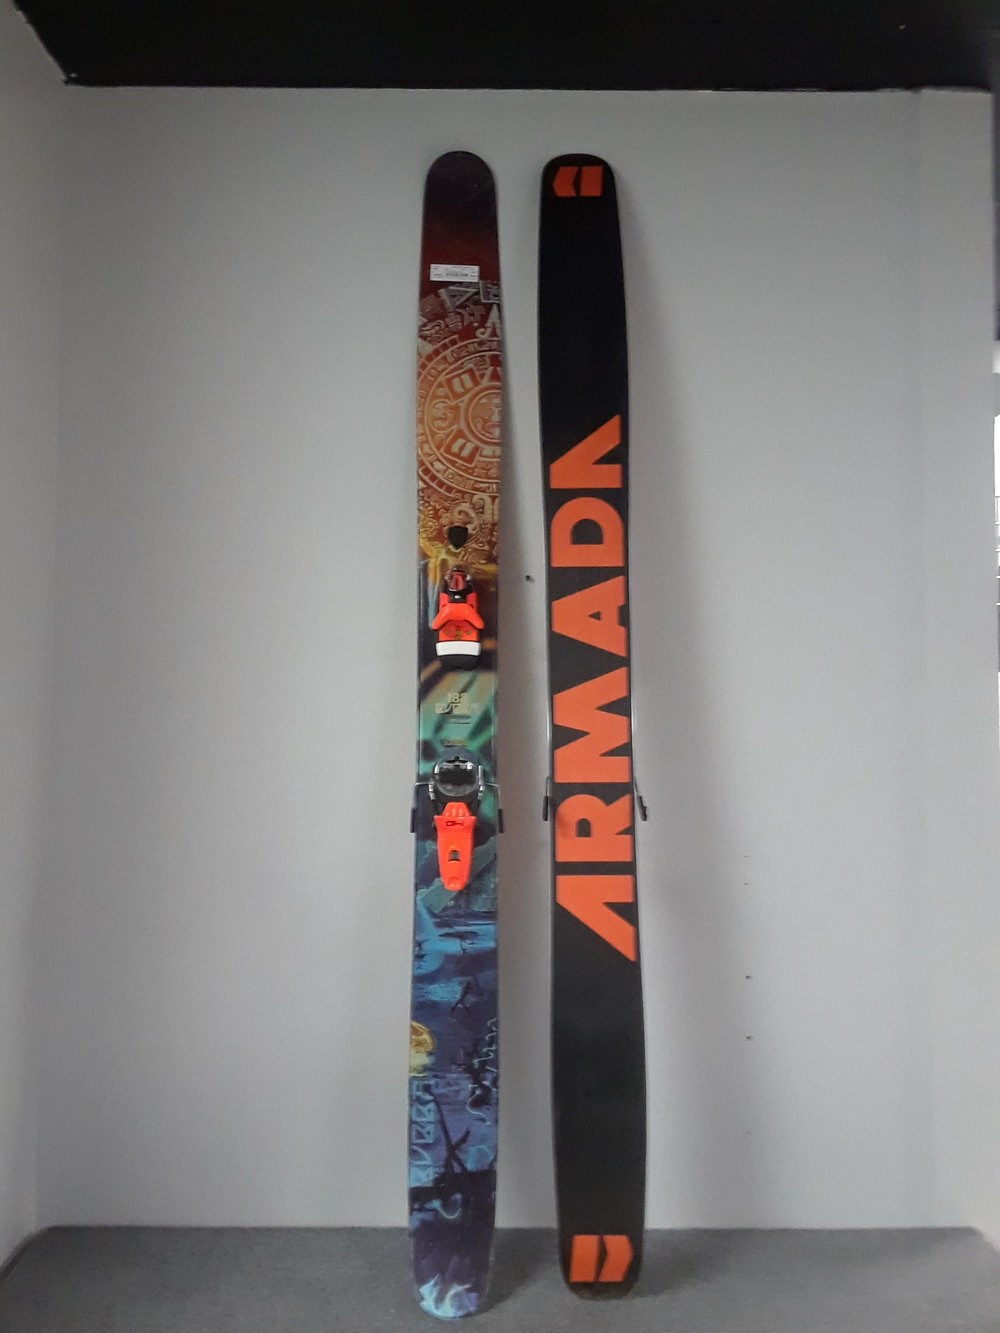 If you've already been dreaming of the deep days, the really deep days, here's your ski. The 188 Armada Bubba 133 with Rossi FKS 140's. The plank's retailed at $1,050 and we have them priced at $449 including the bindings.